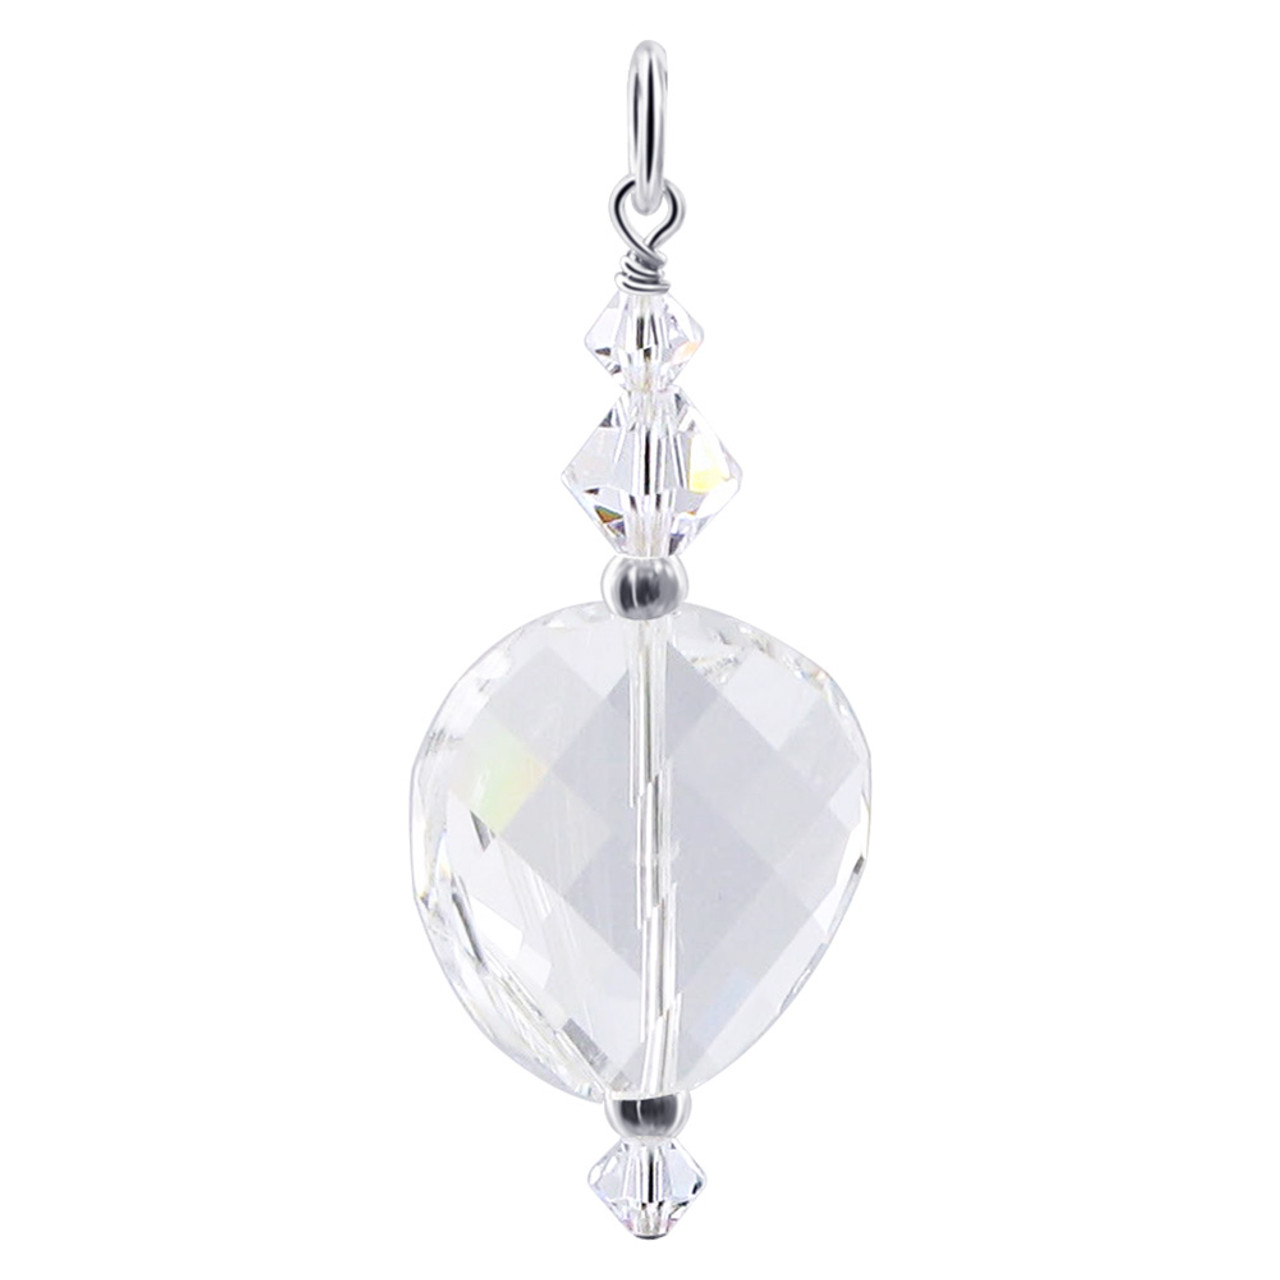 Multifaceted Clear Crystal 925 Silver Charm Pendant